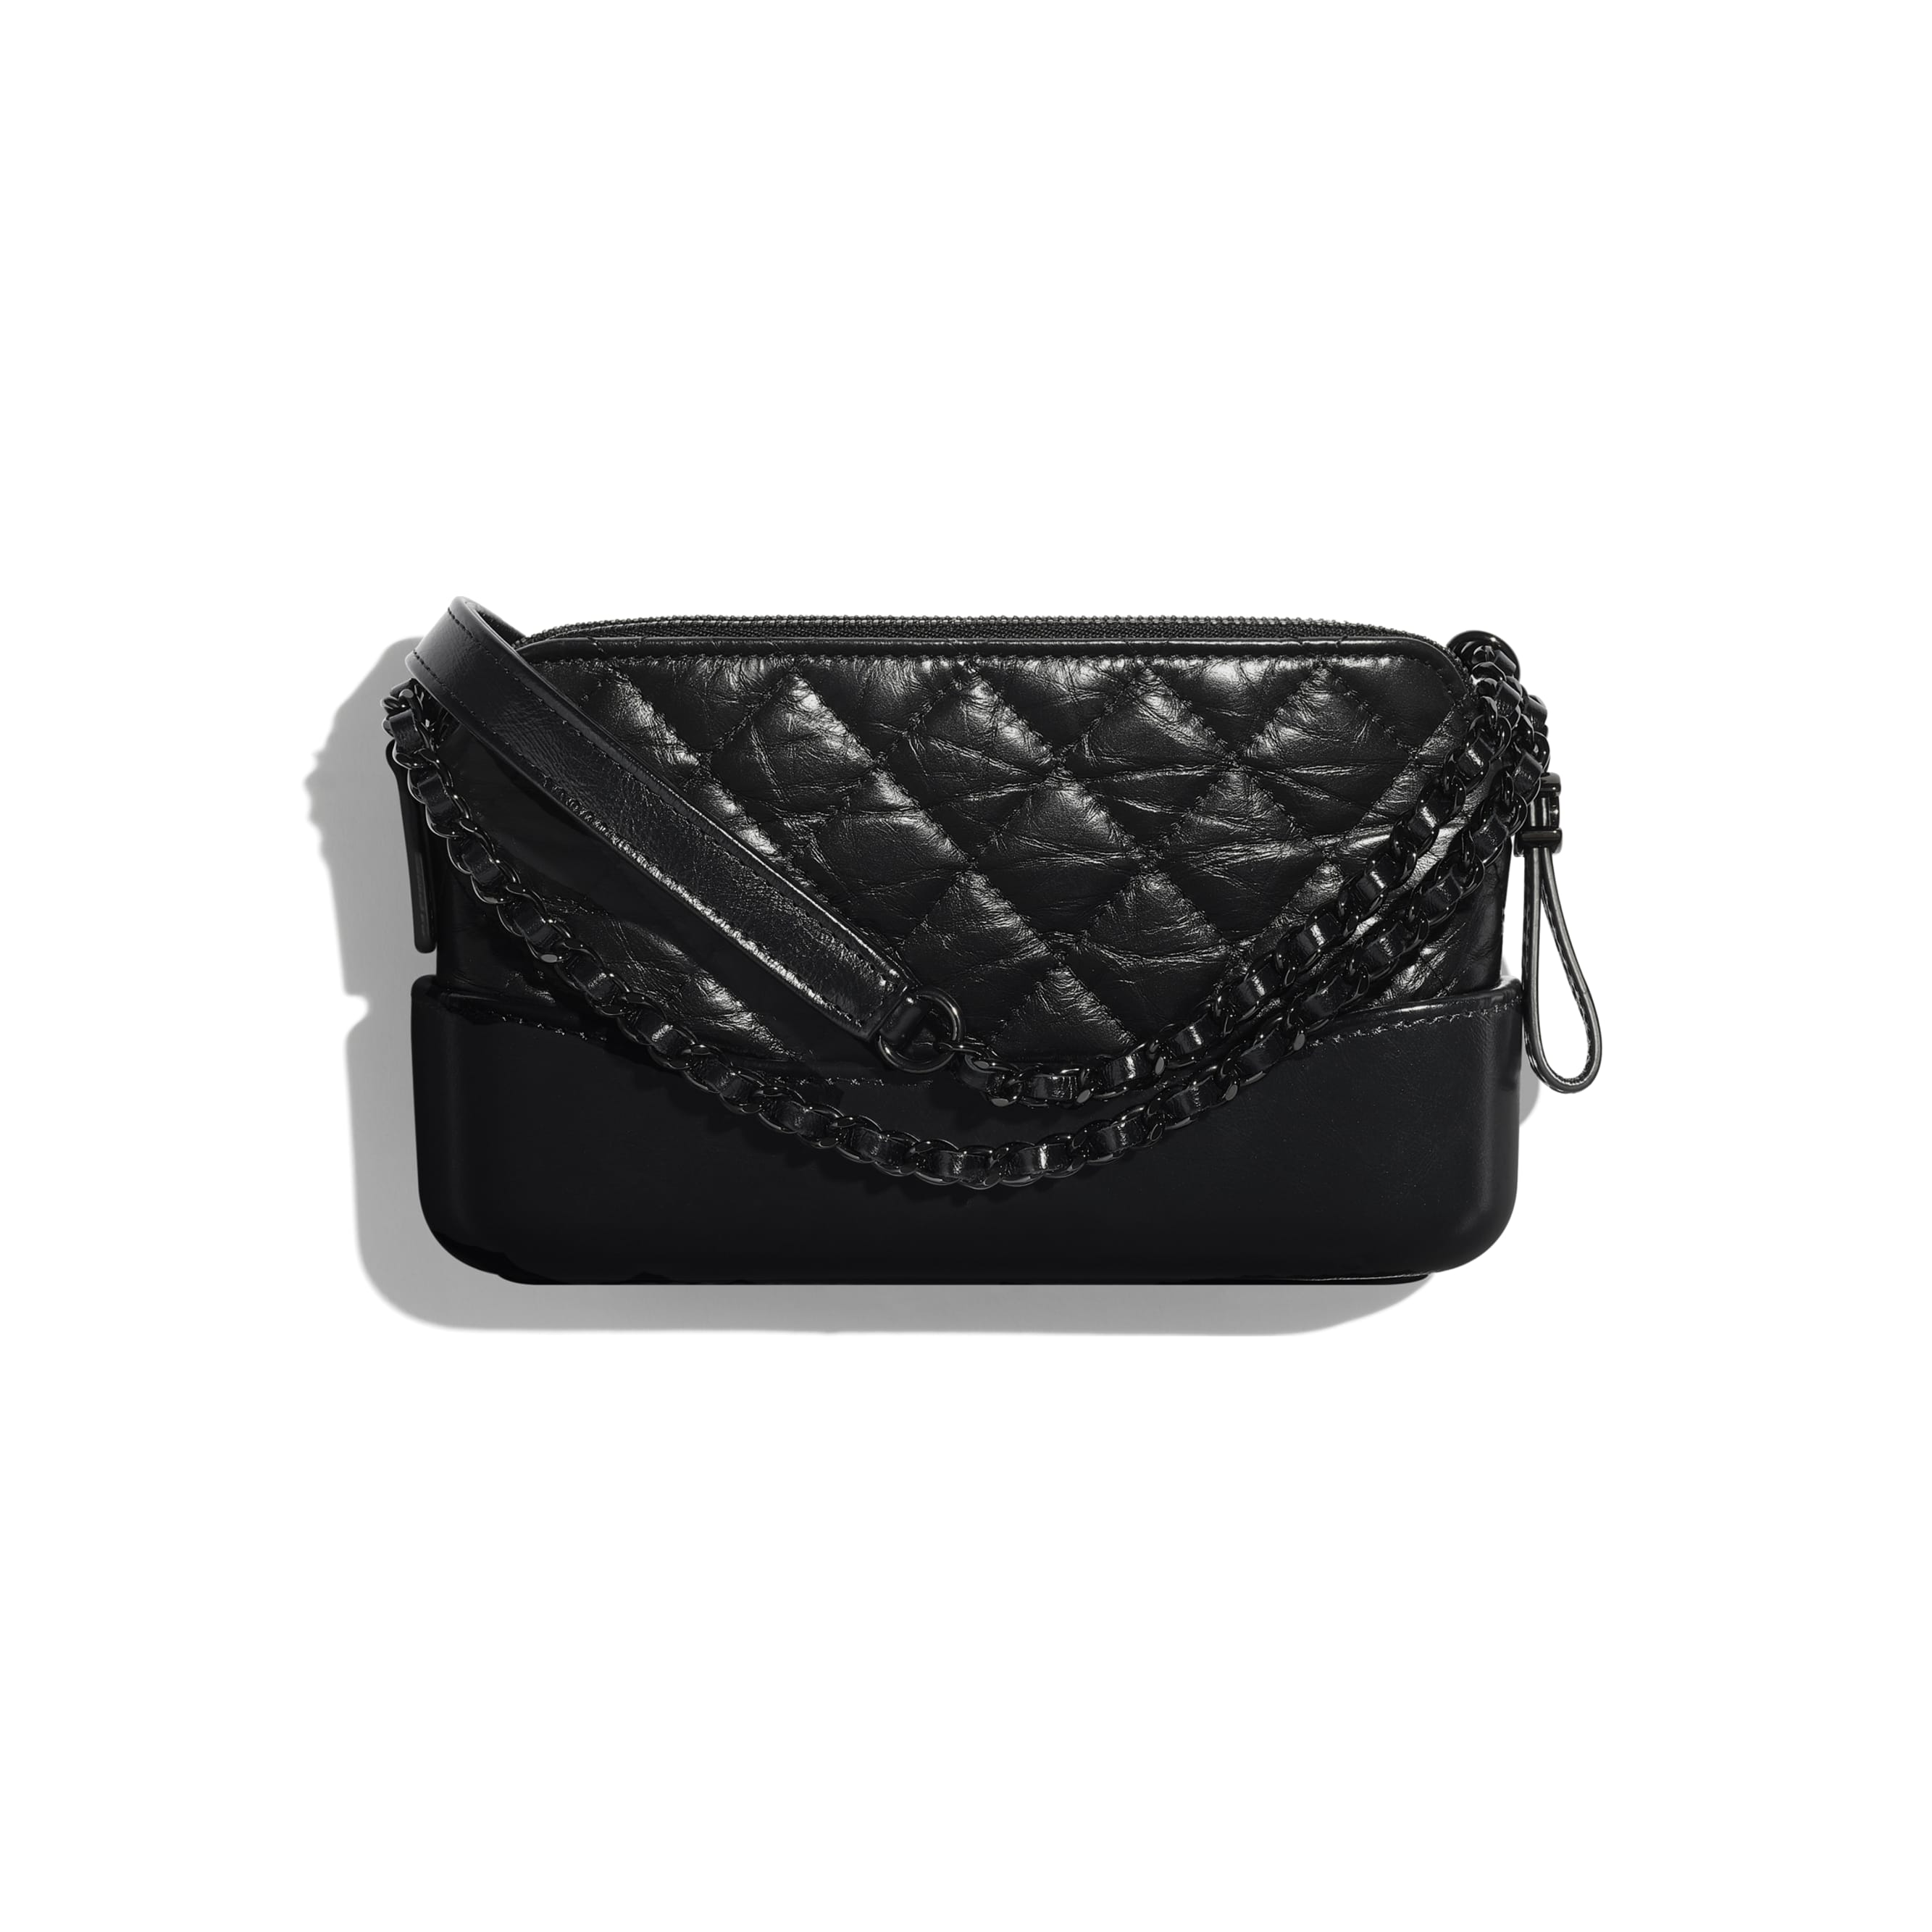 Clutch With Chain - Black - Aged Calfskin, Smooth Calfskin & Black Metal - Alternative view - see standard sized version